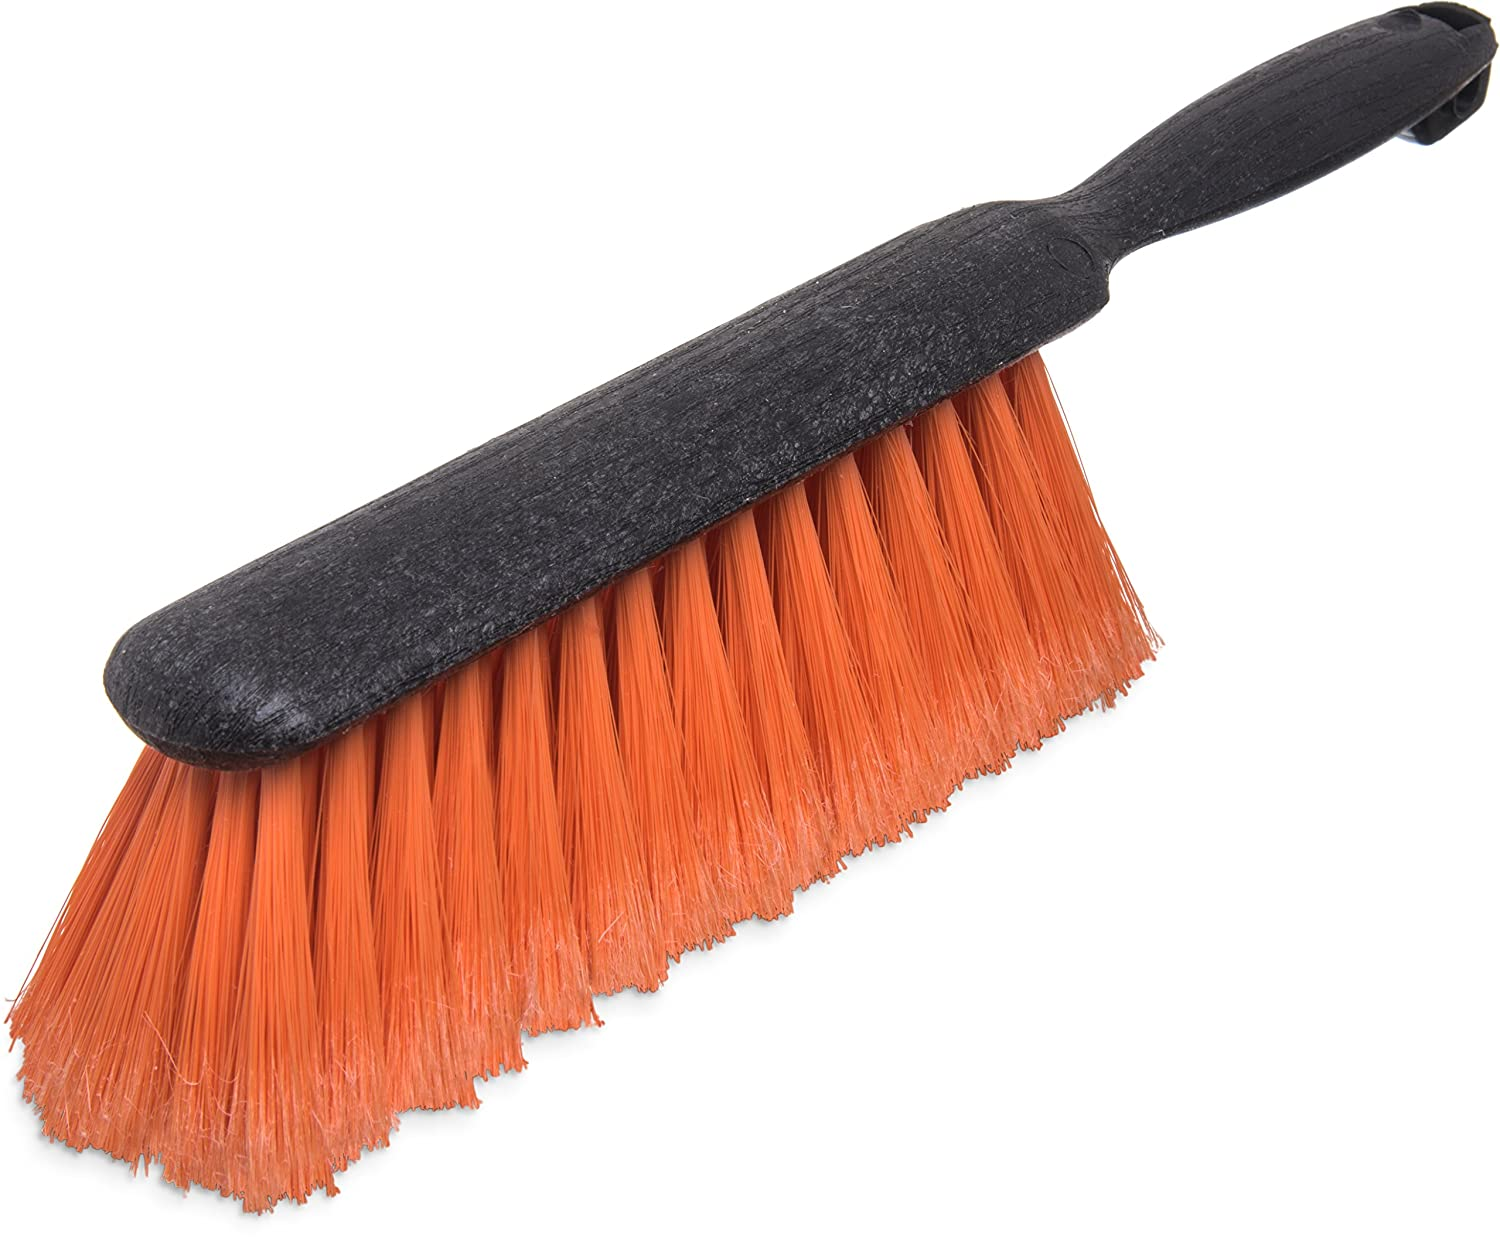 Carlisle 3621124 Flo Pac Counter Bench Brush Black Plastic Block and Handle 2 1 2 Long Orange Flagged Polypropylene Bristles 8 Brush Length 13 Overall Length Case of 12